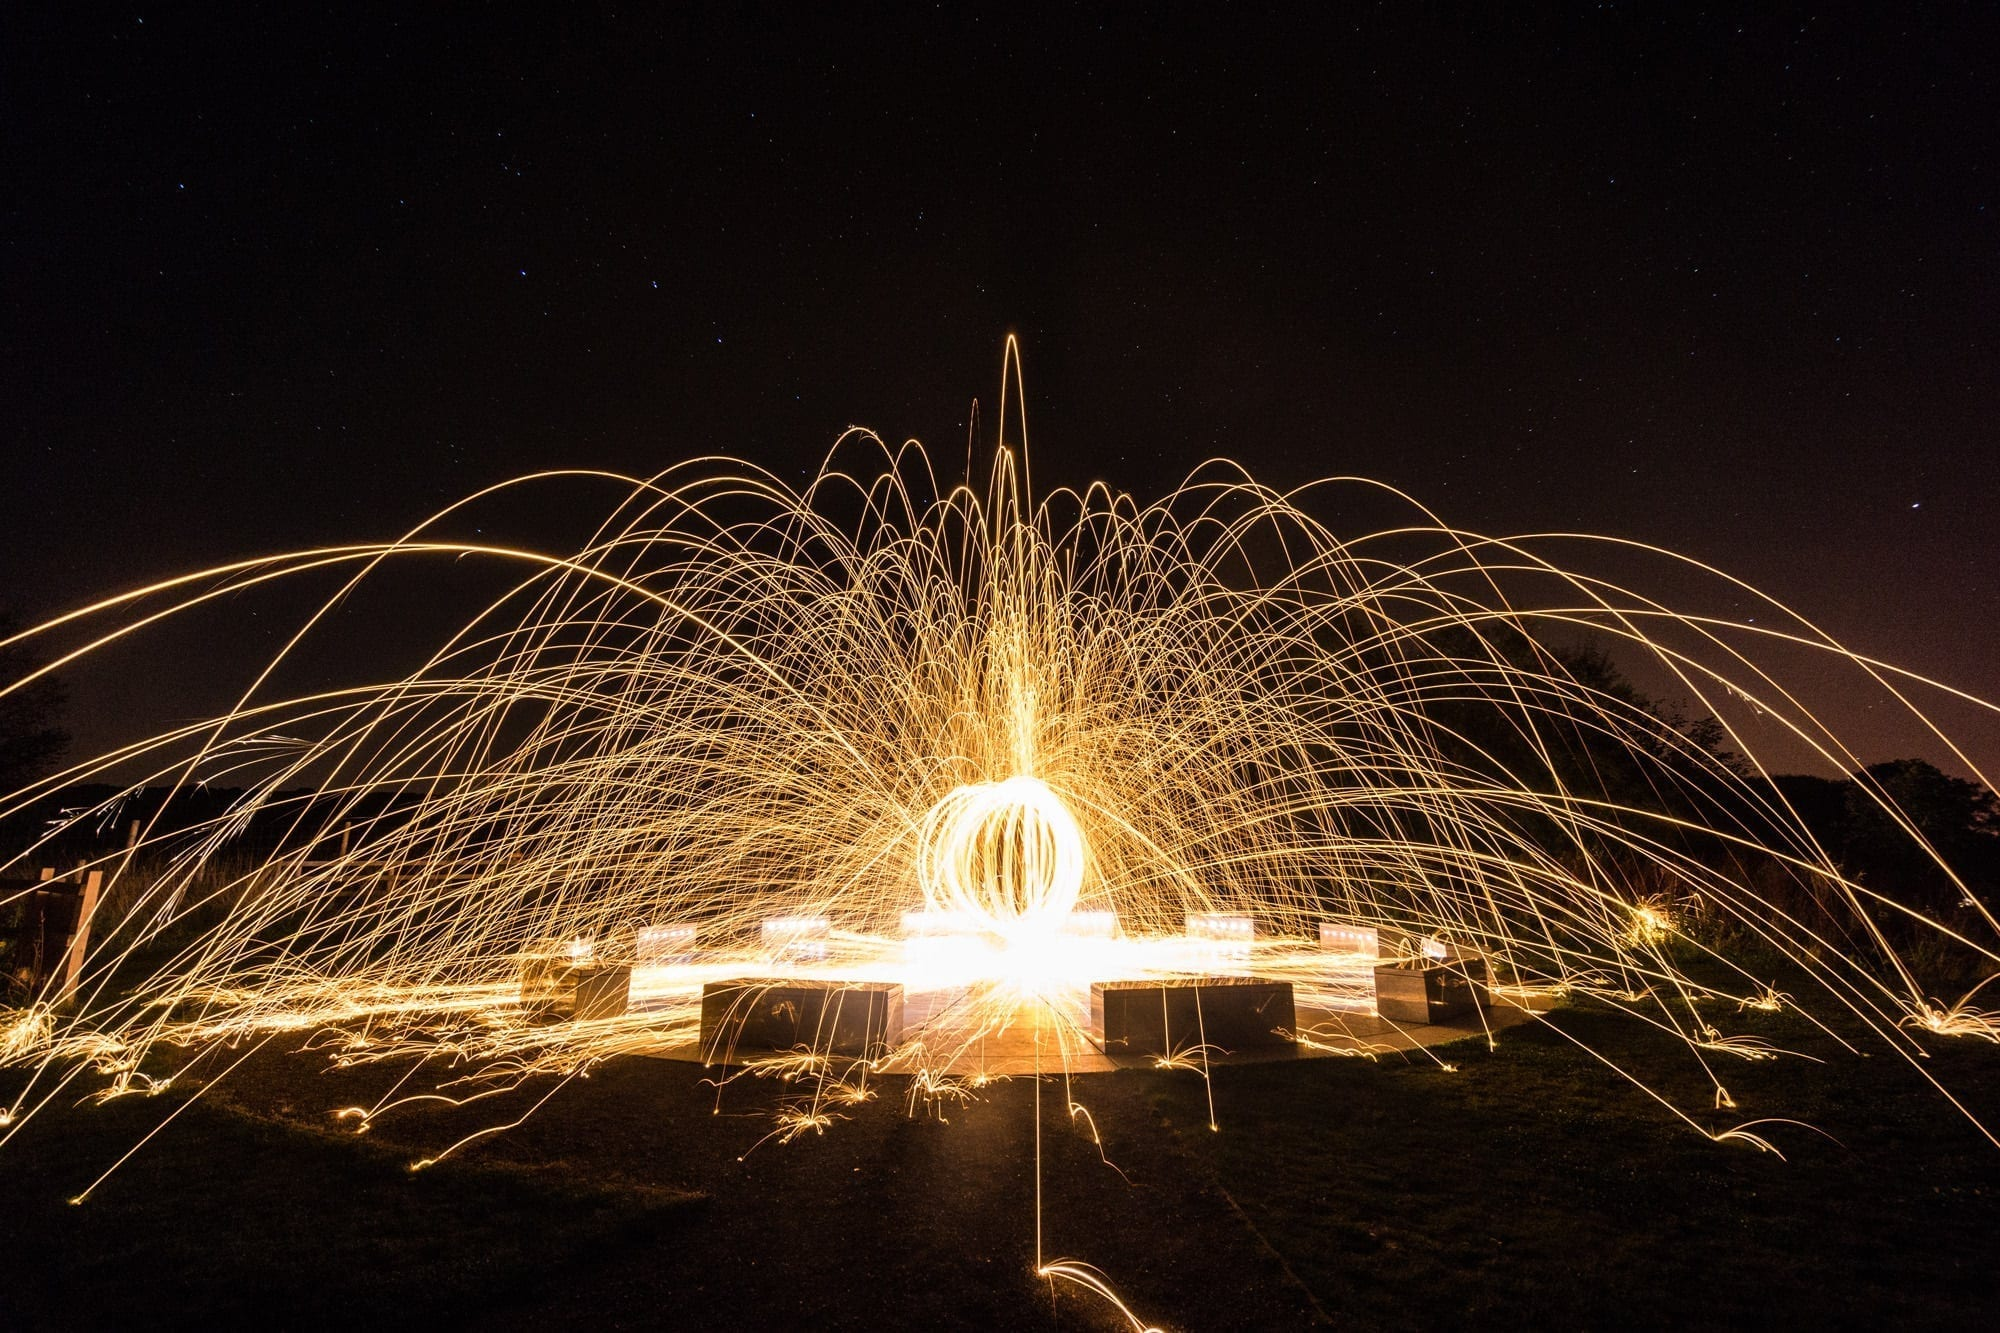 Wirksworth Star Disc Fireball  - Peak District Photography